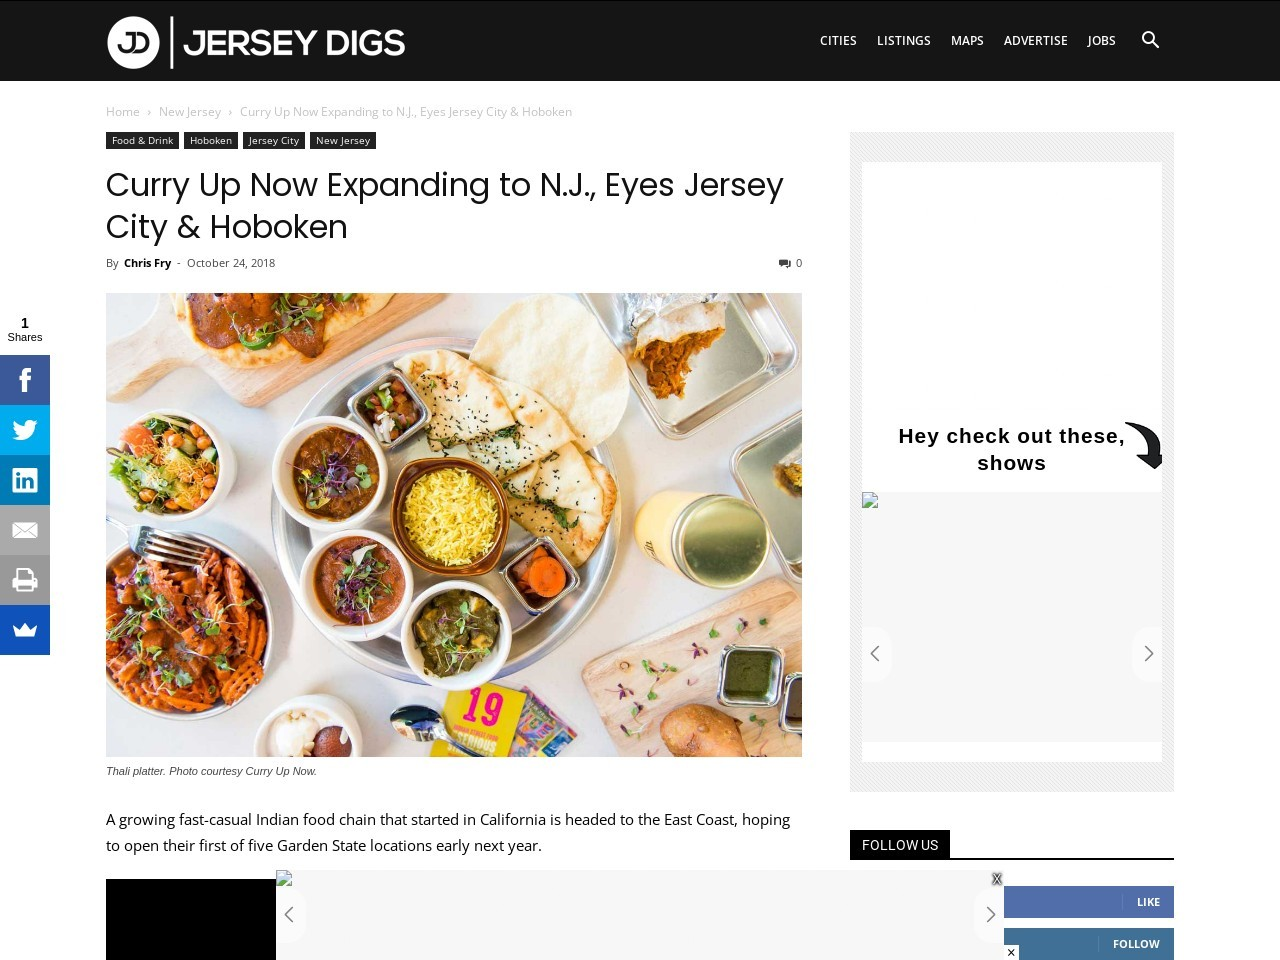 Curry Up Now Expanding to N.J., Eyes Jersey City & Hoboken